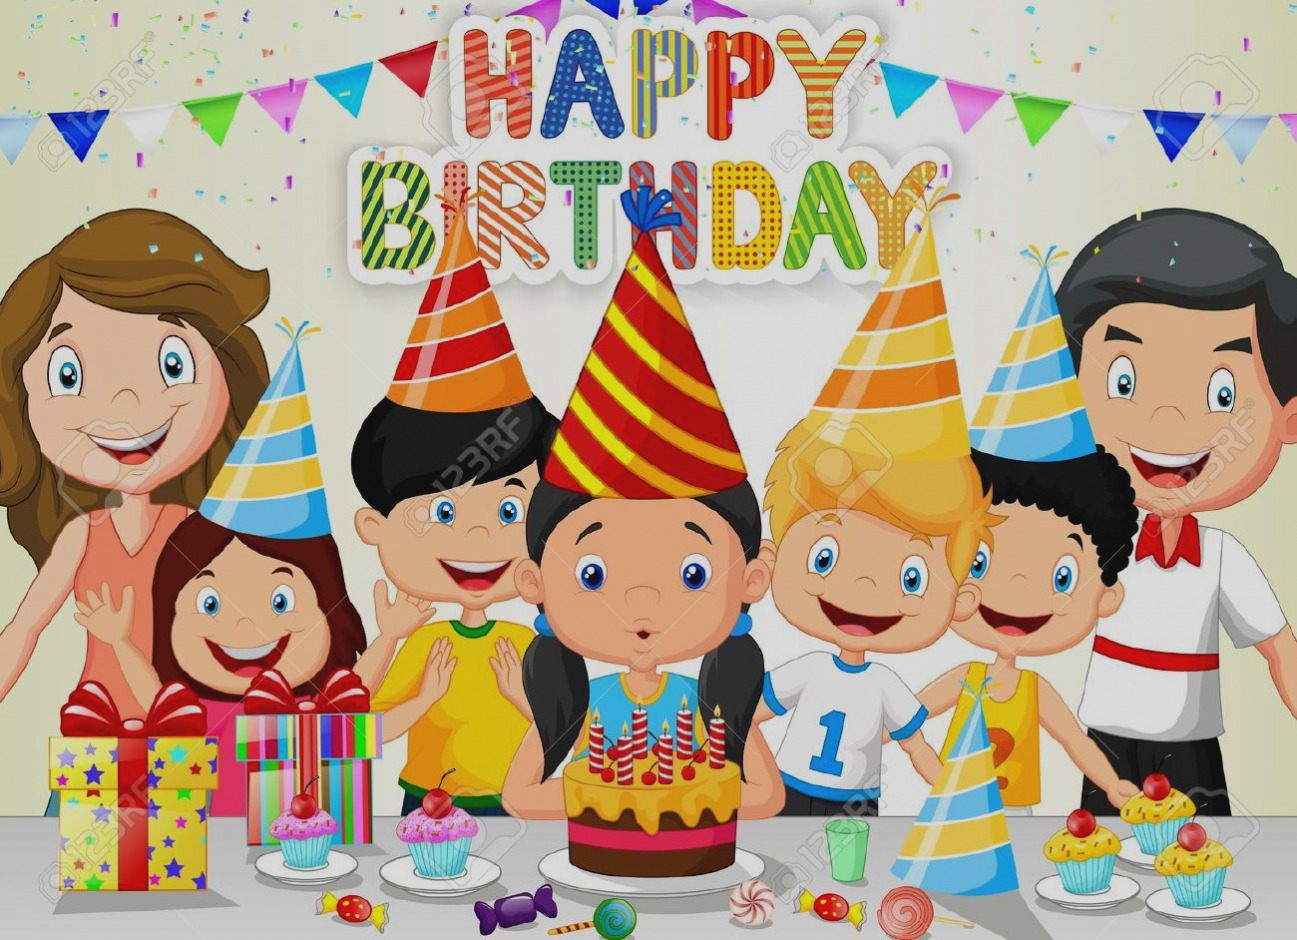 clip art birthday party pictures ; gallery-of-birthday-party-clip-art-clipart-celebration-36777829-happy-girl-cartoon-blowing